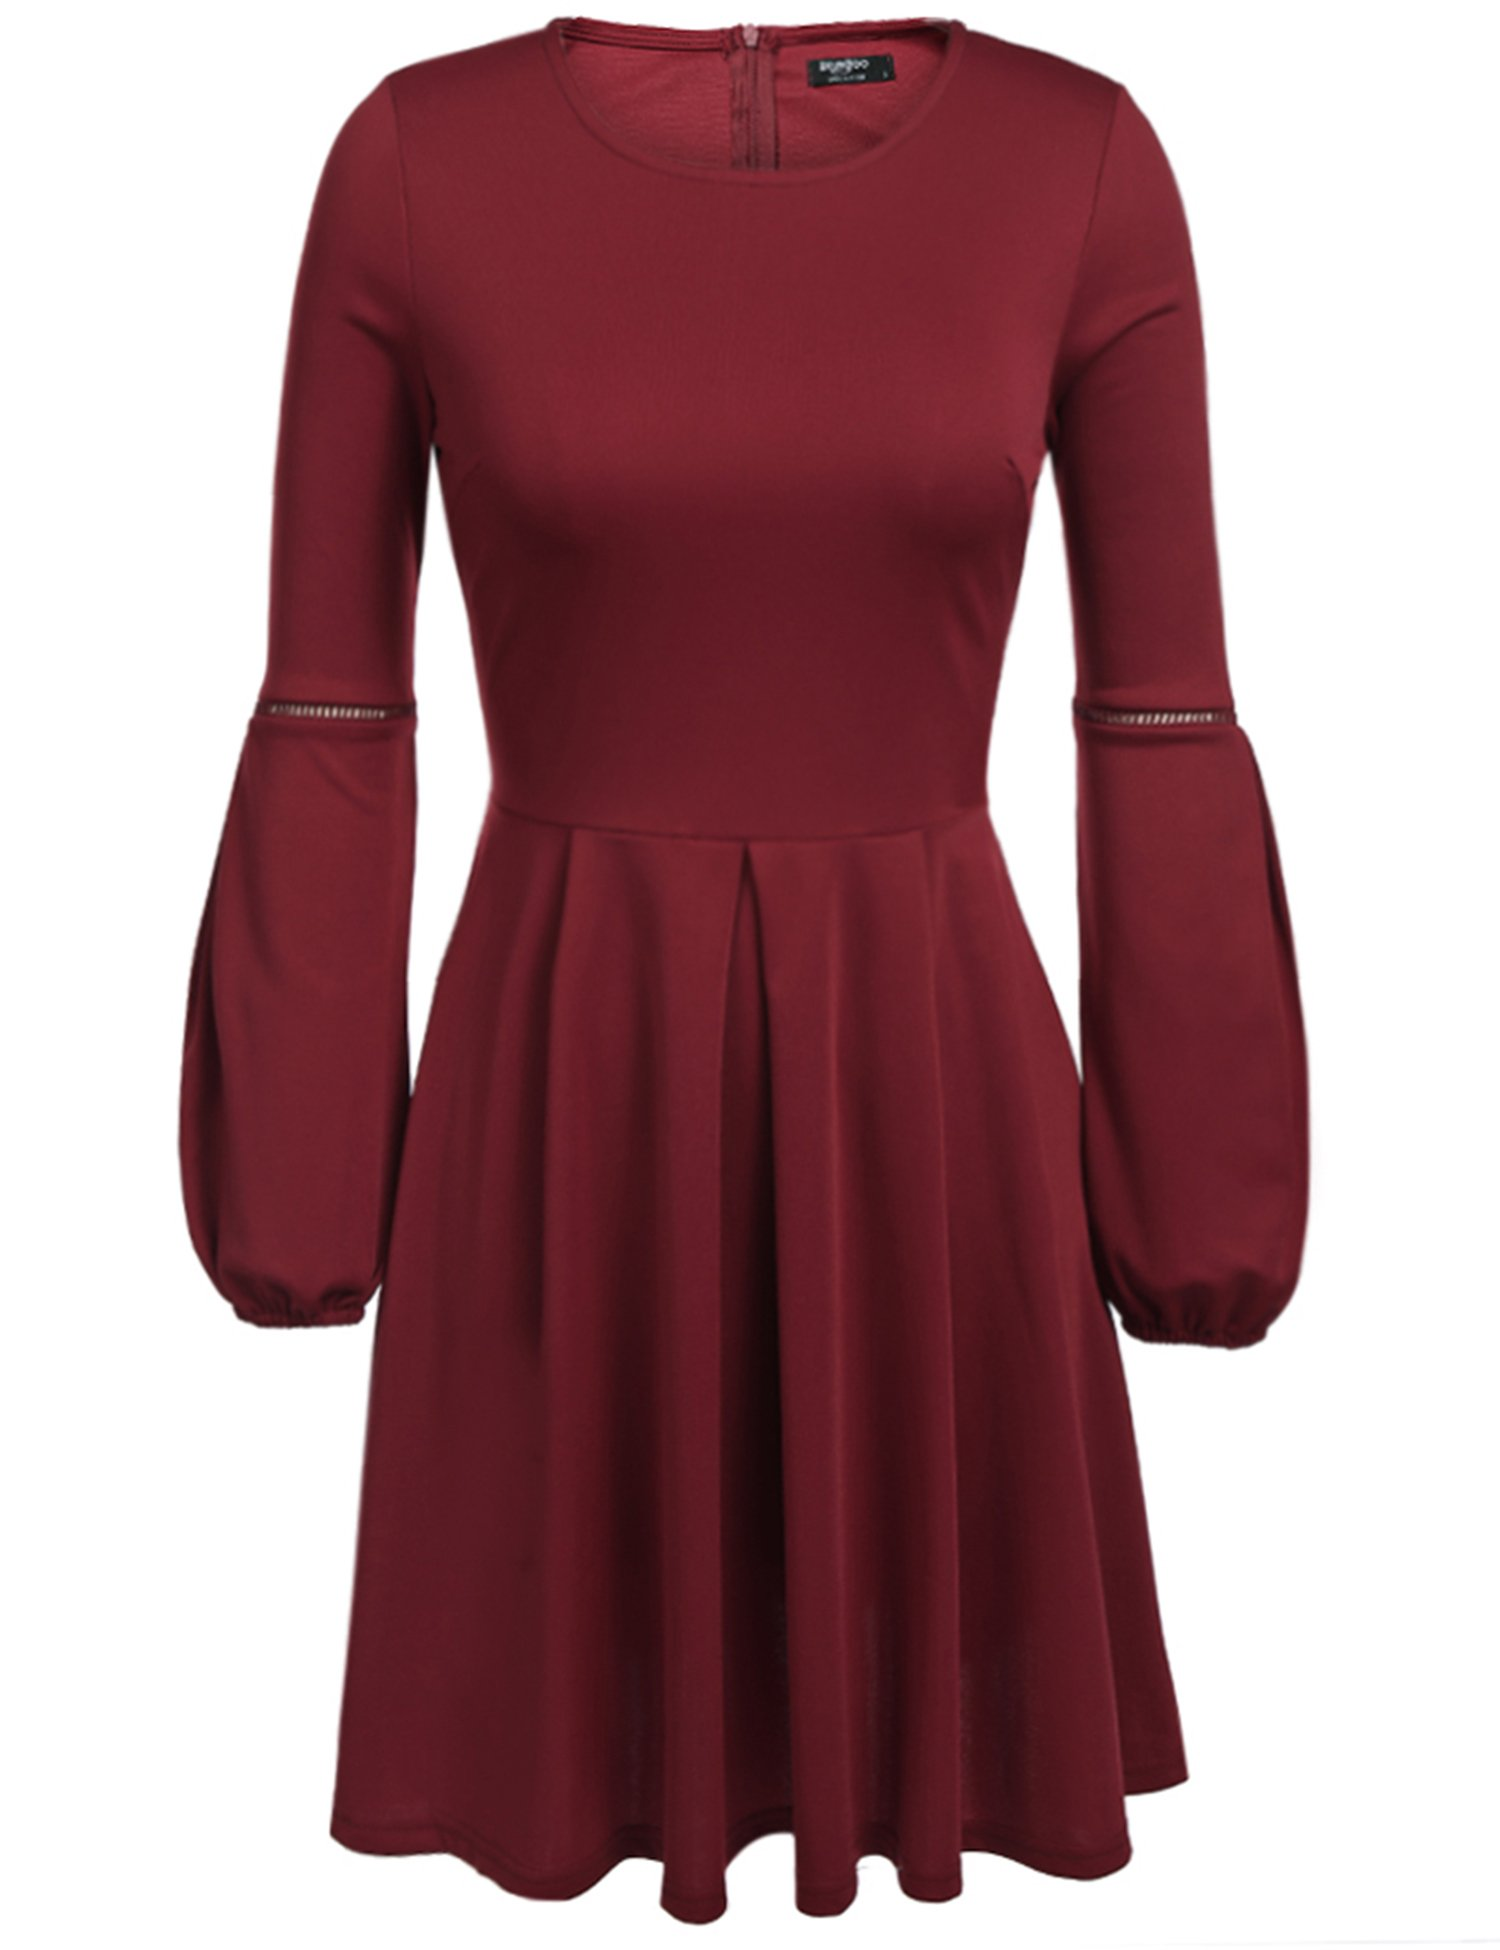 Available at Amazon: Beyove Women's Vintage Scoop Neck 3/4 Sleeve Casual A-Line Swing Cocktail Party Dress